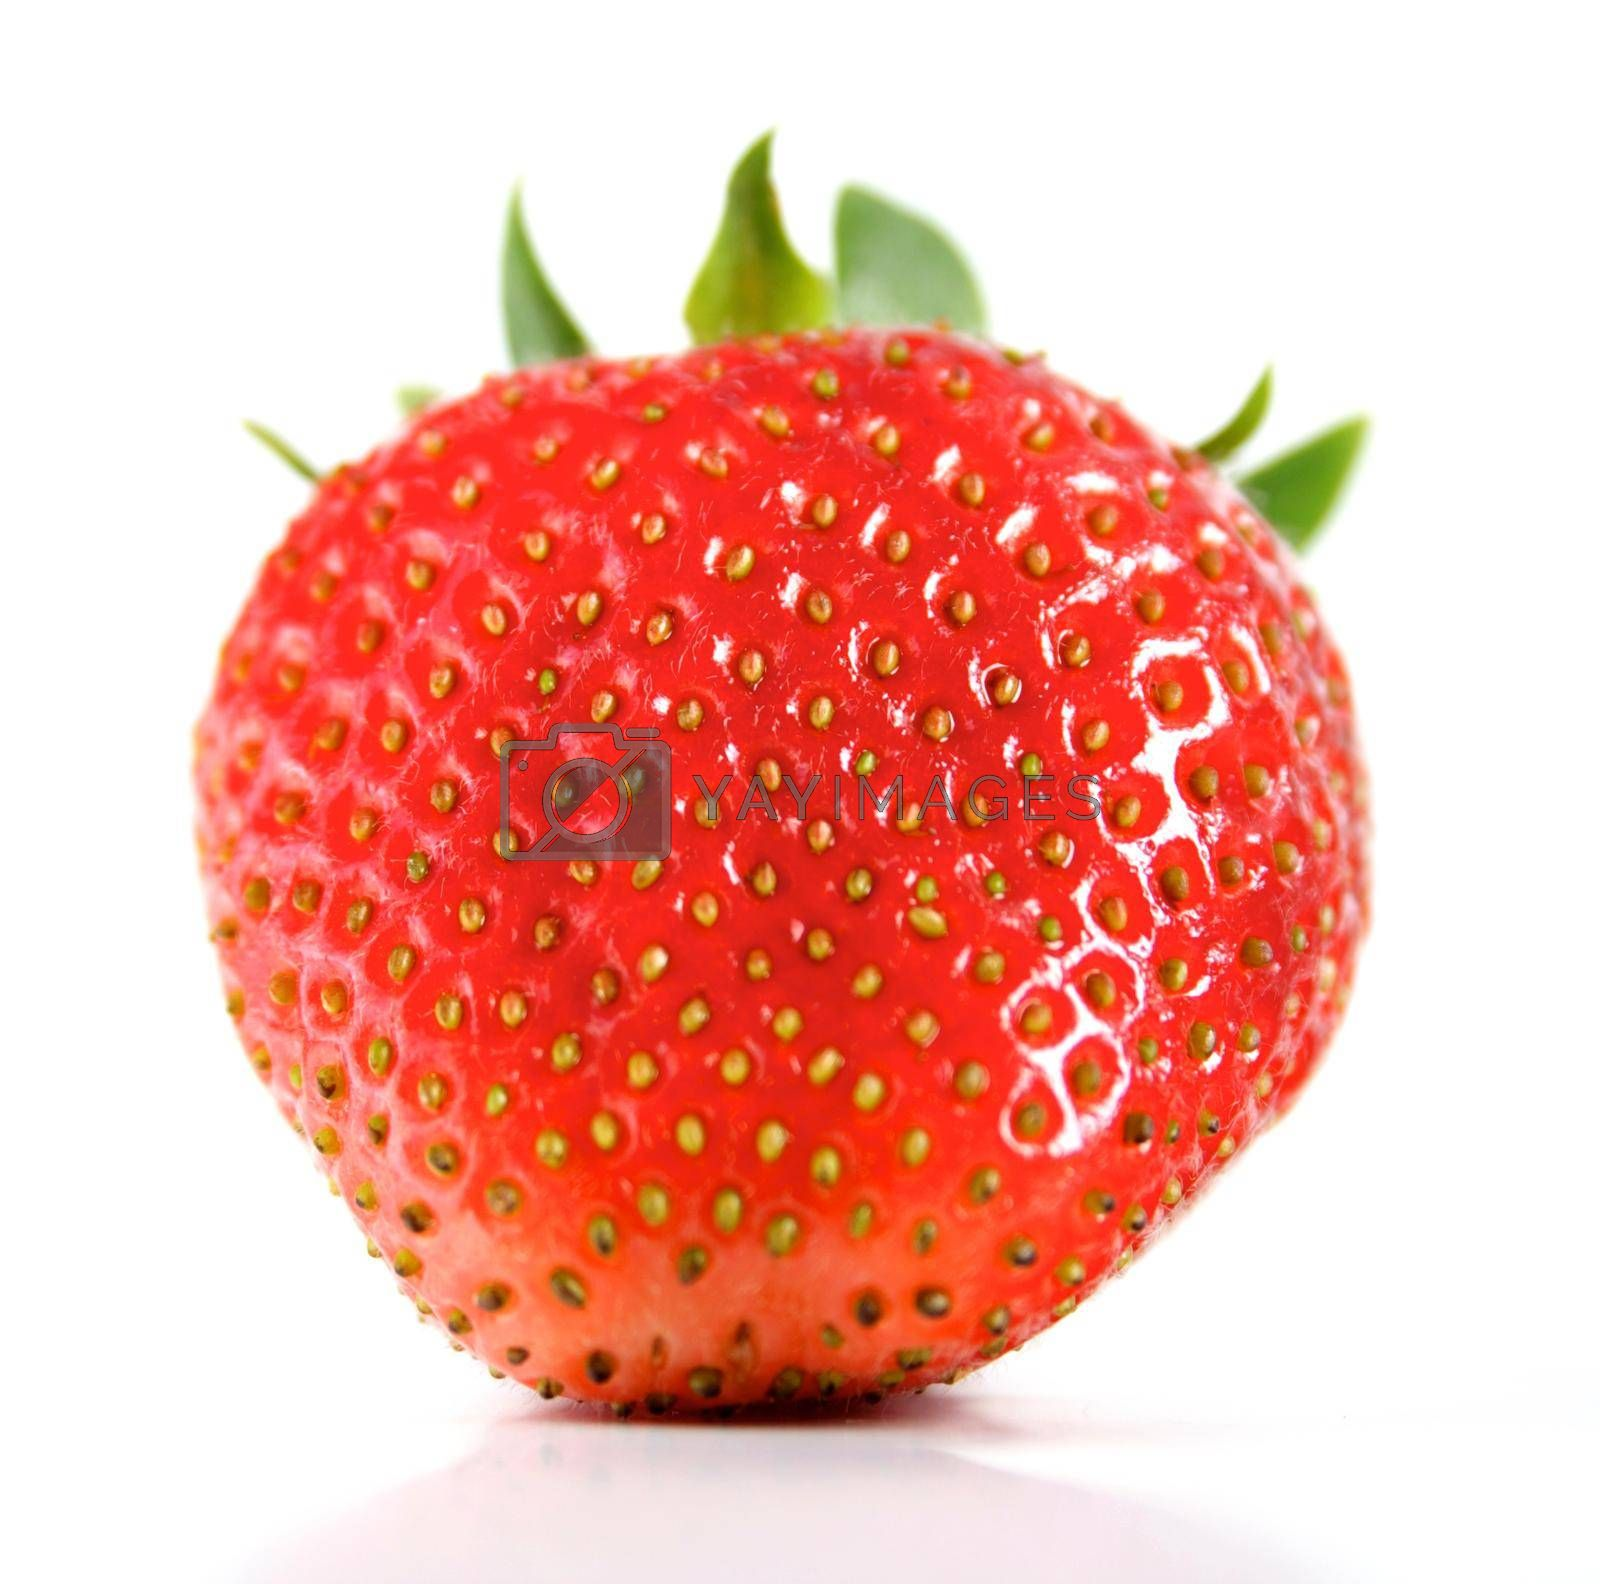 Strawberry on white background - close-up